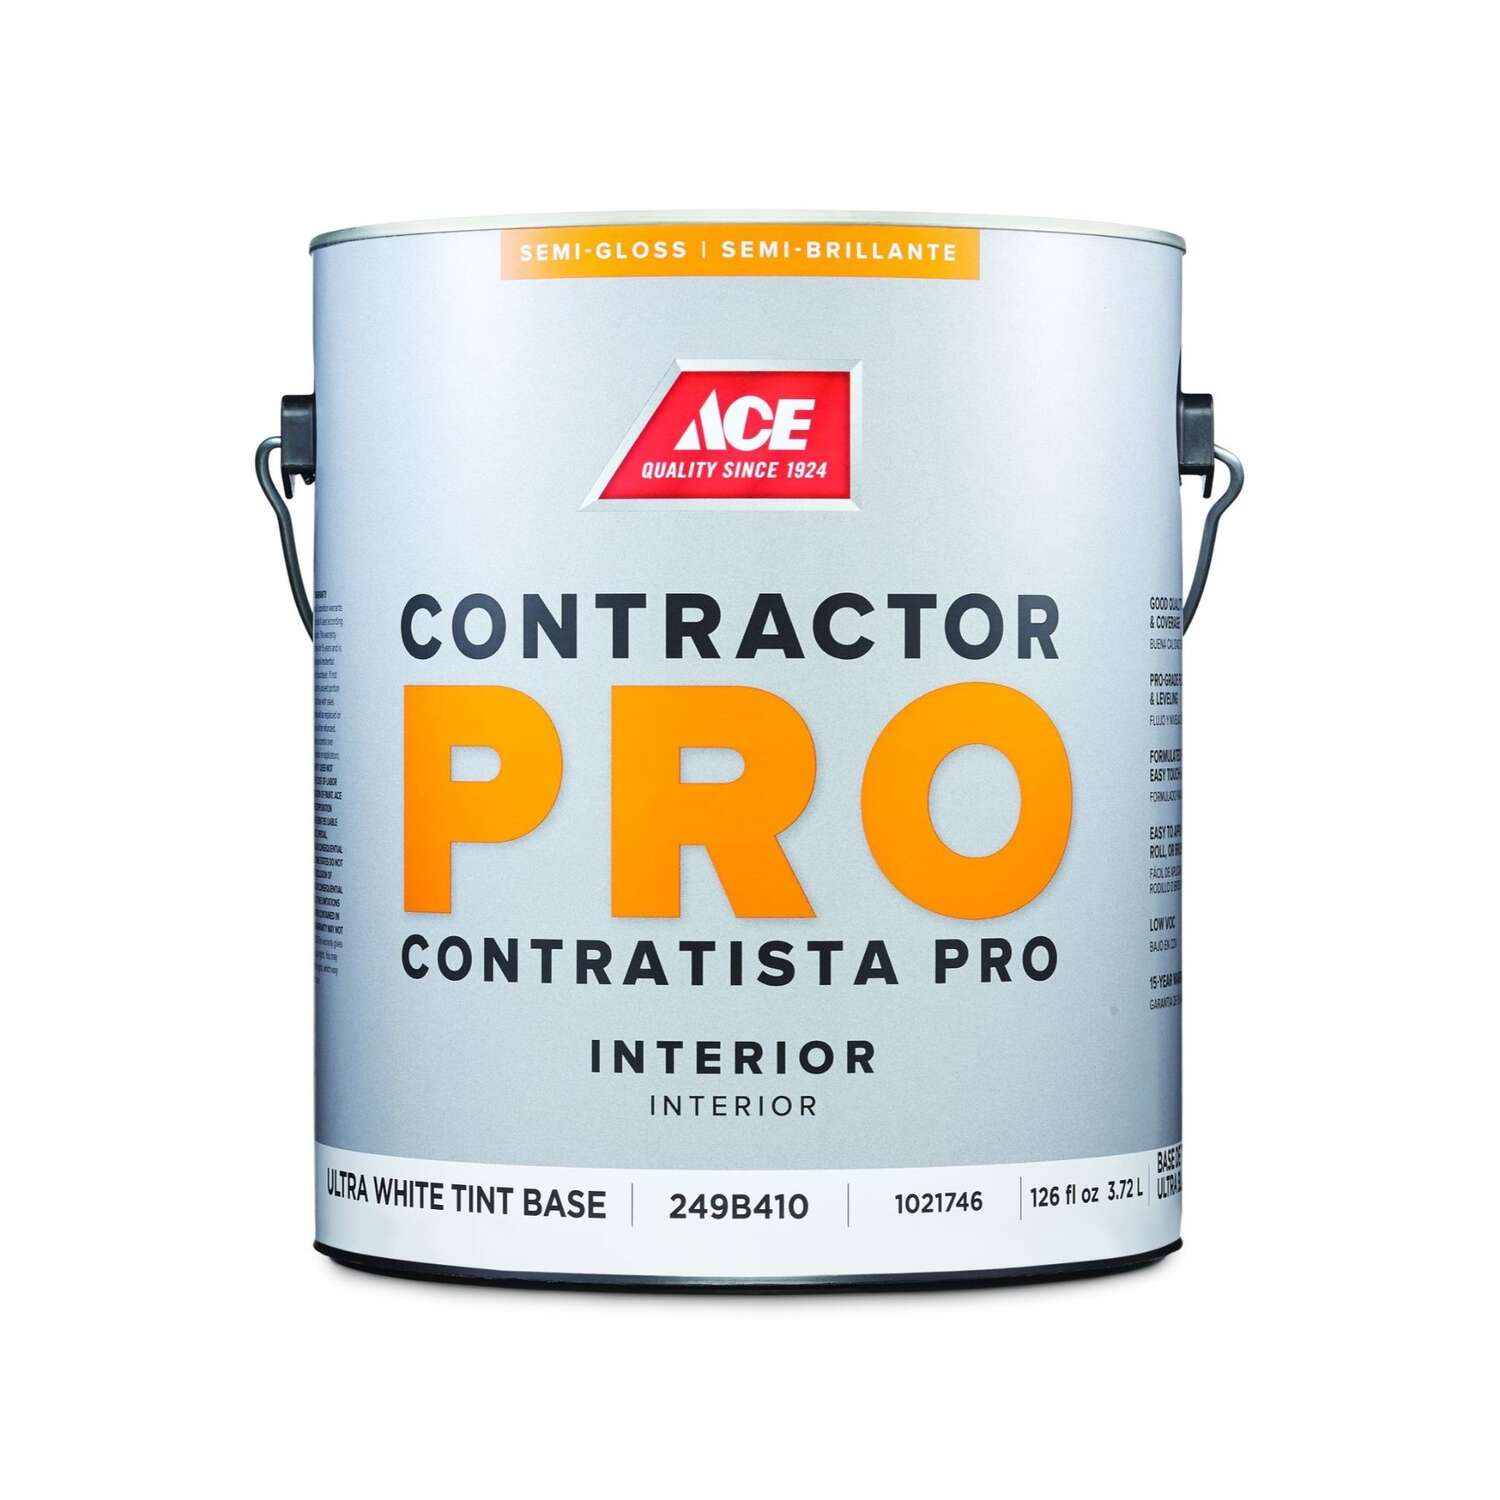 Ace  Contractor Pro  Semi-Gloss  Tint Base  Ultra White Base  Paint  Interior  1 gal.